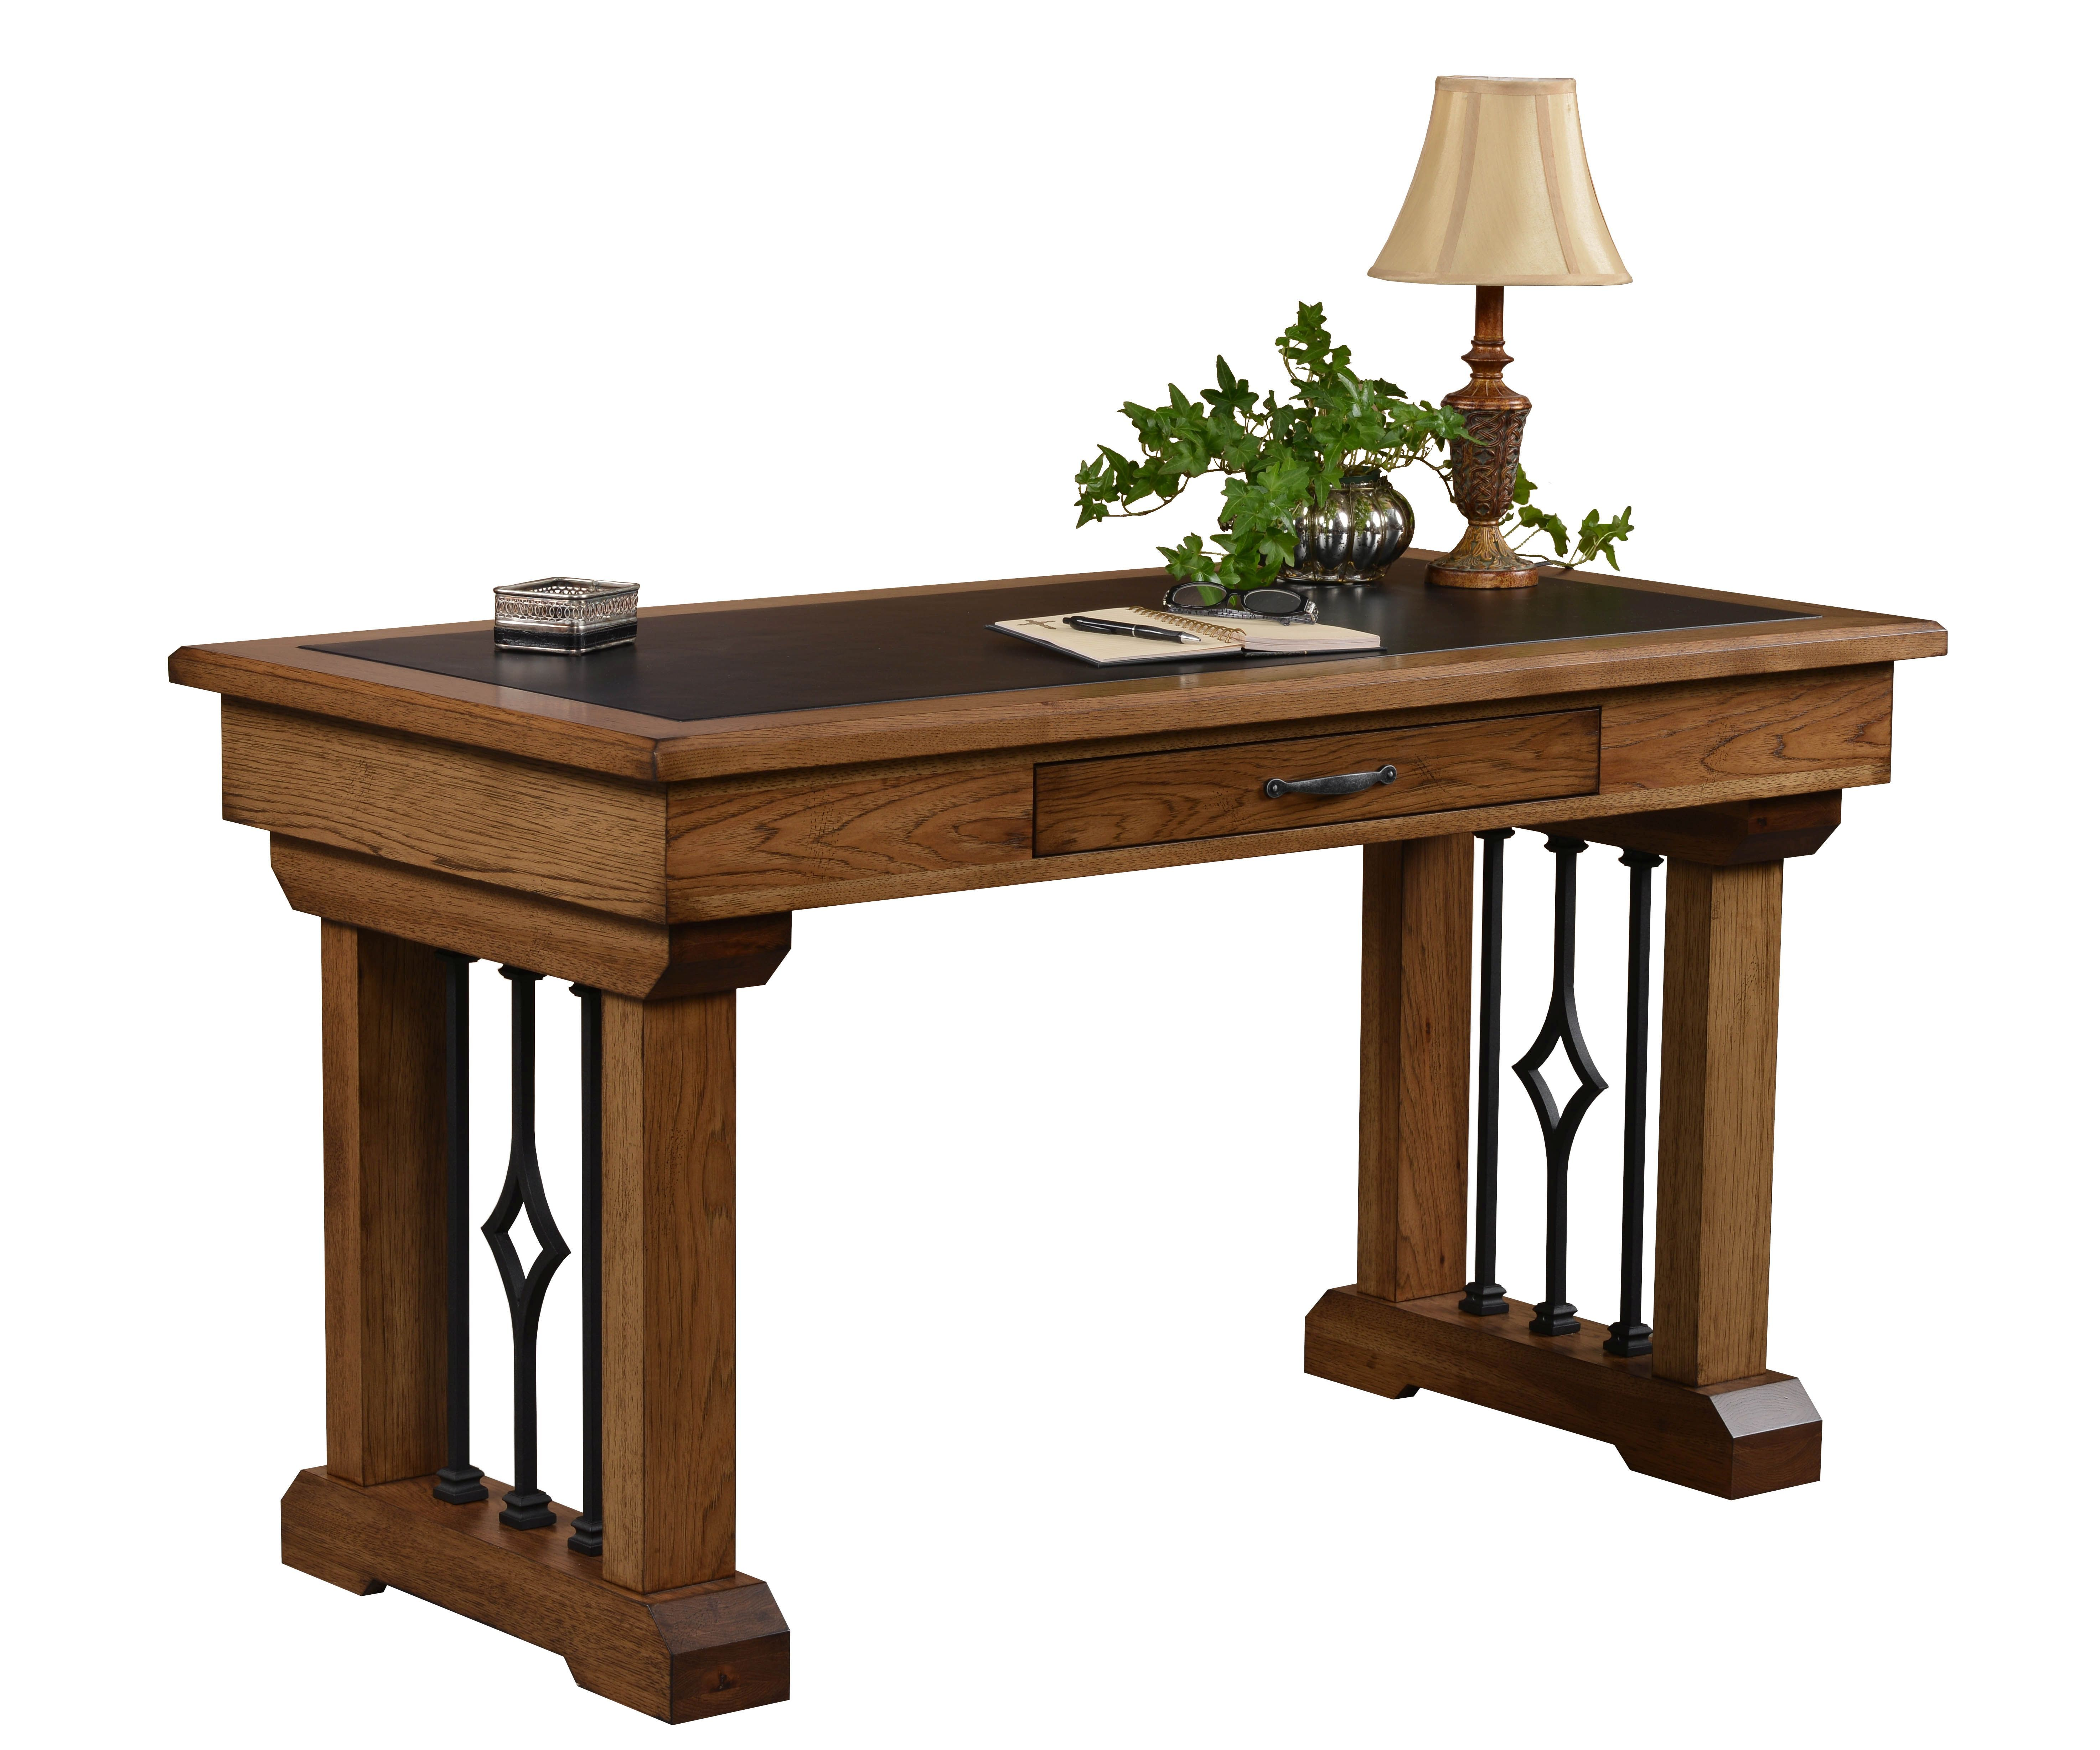 Amish Oak Furniture Mattress Company For Heirloom Quality Hand Crafted Wood From Ohio Major Brands Including Smith Brothers Of Berne